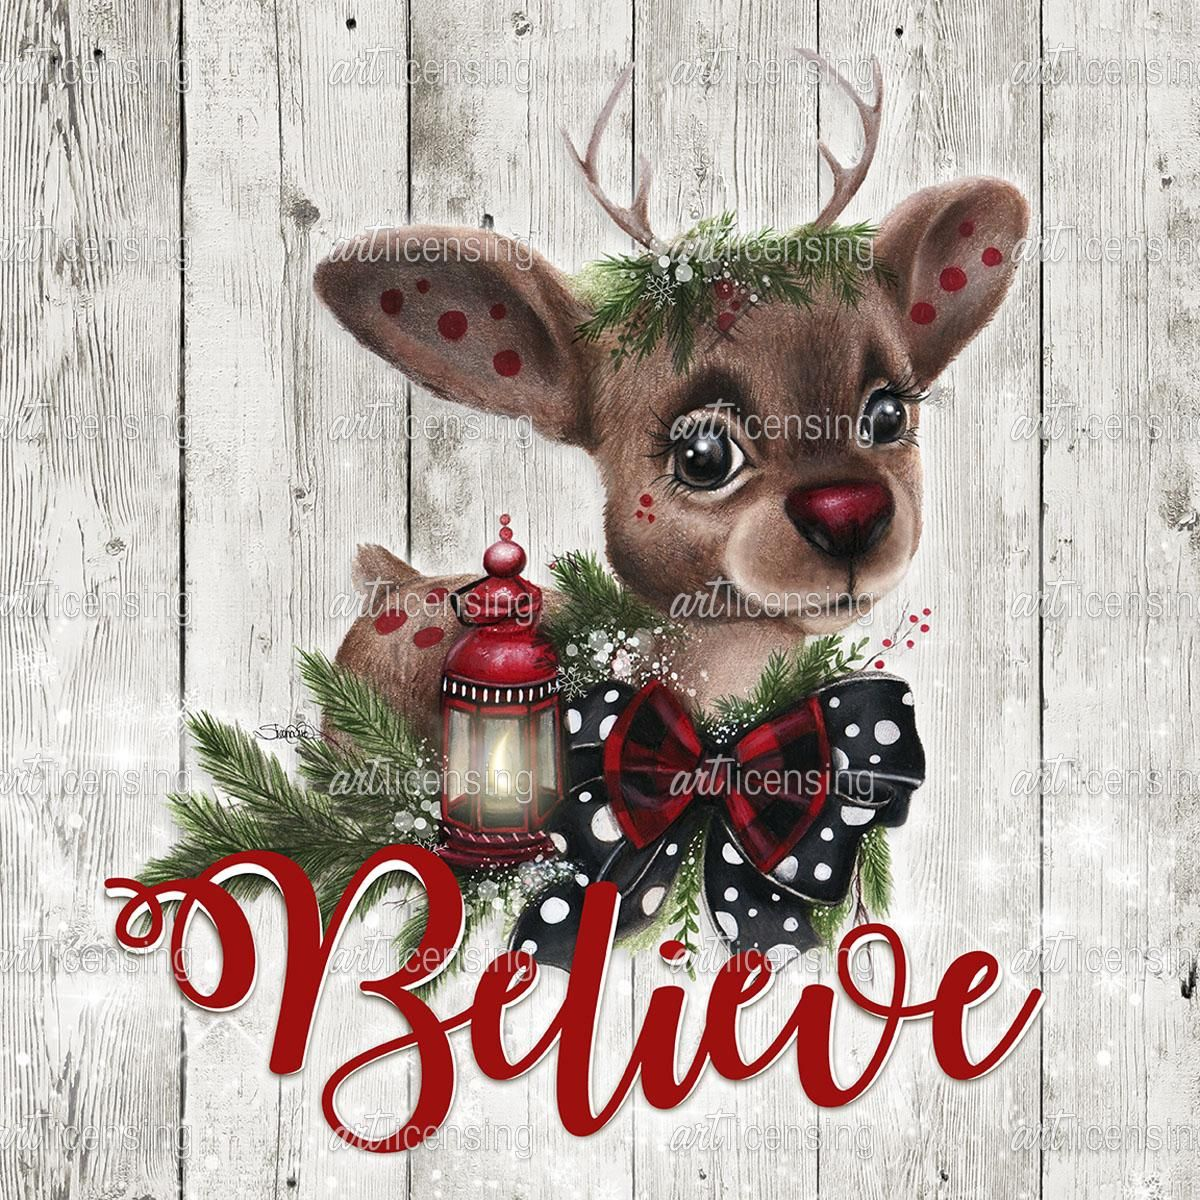 Rudolph Wood Background Art LicensingArt Licensing